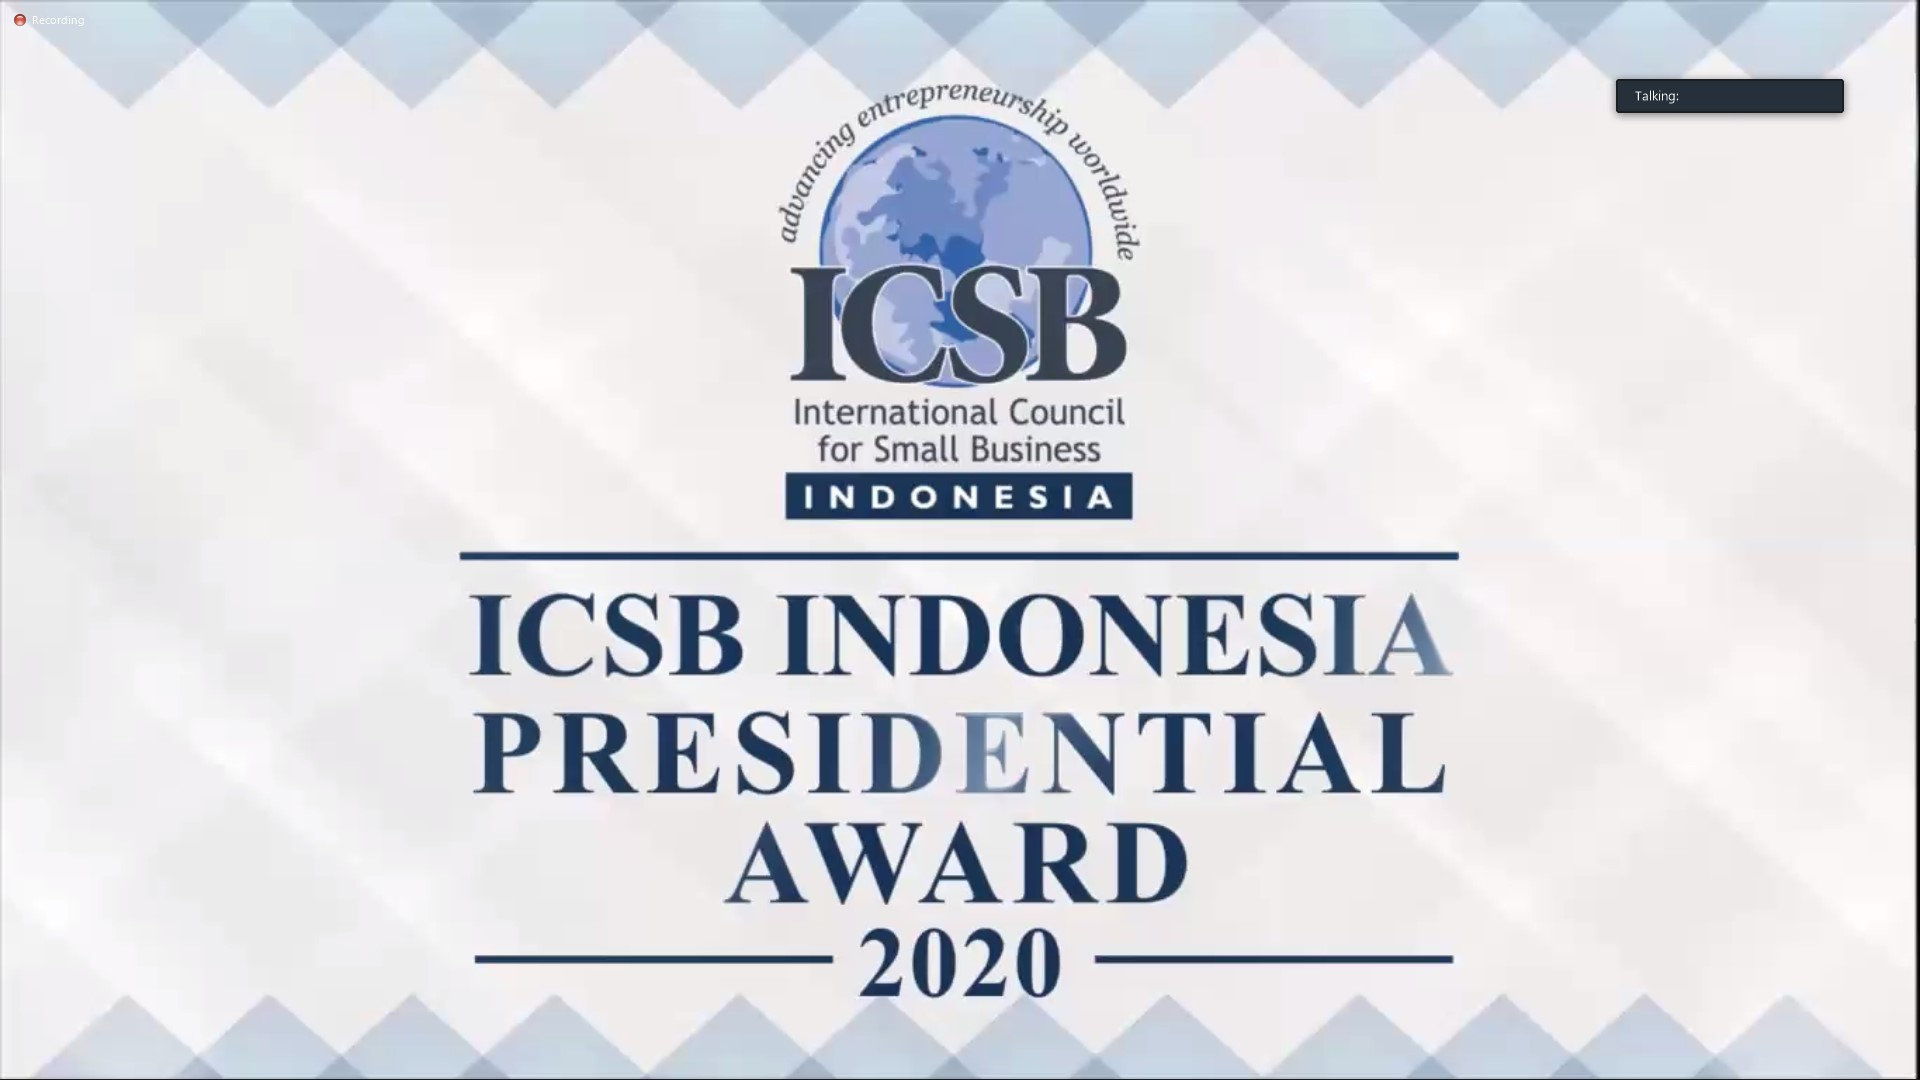 Kemendag Menerima Penghargaan Indonesian Council for Small Business (ICSB) Indonesia  Presidential Award